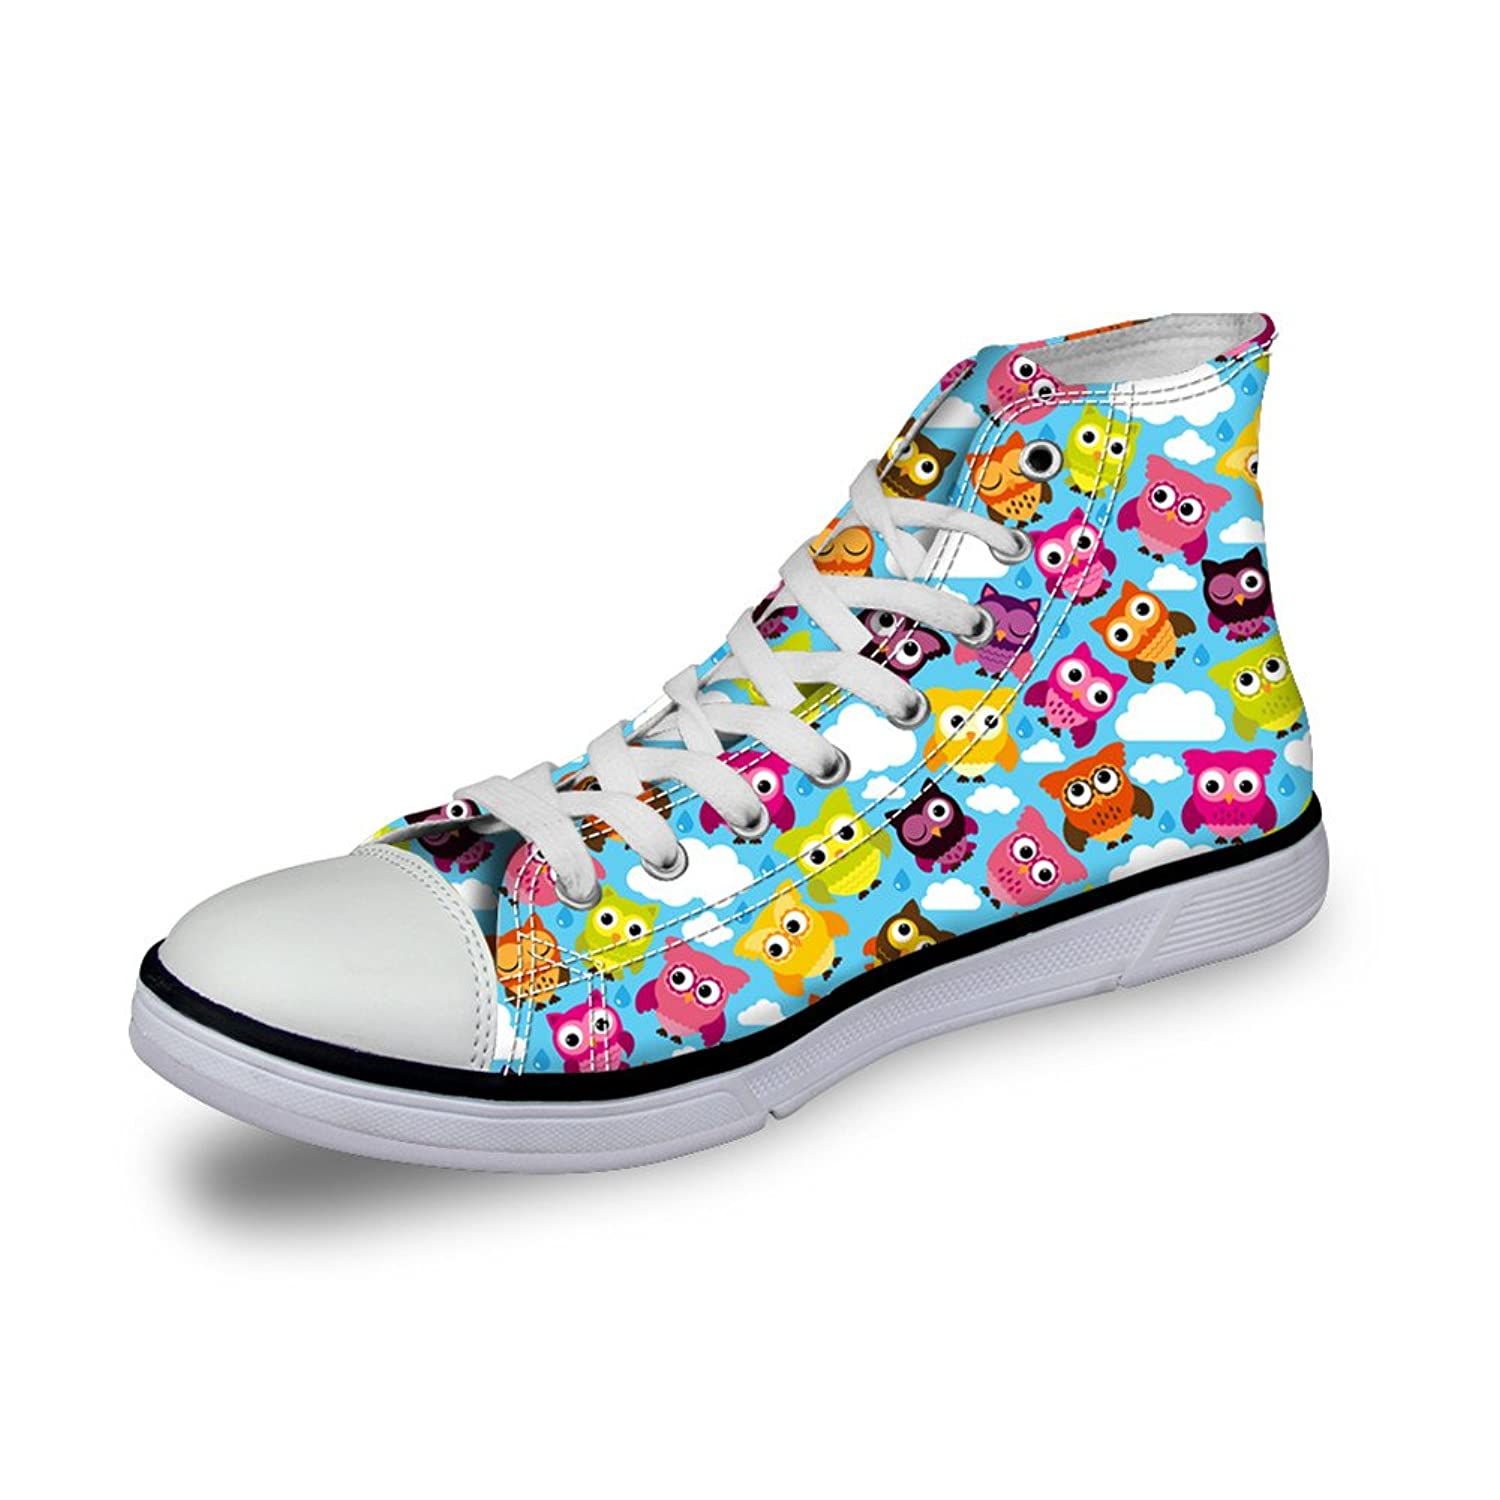 FOR U DESIGNS レディース C200AK B079Z5Y879  Owl 3 Women Size 40